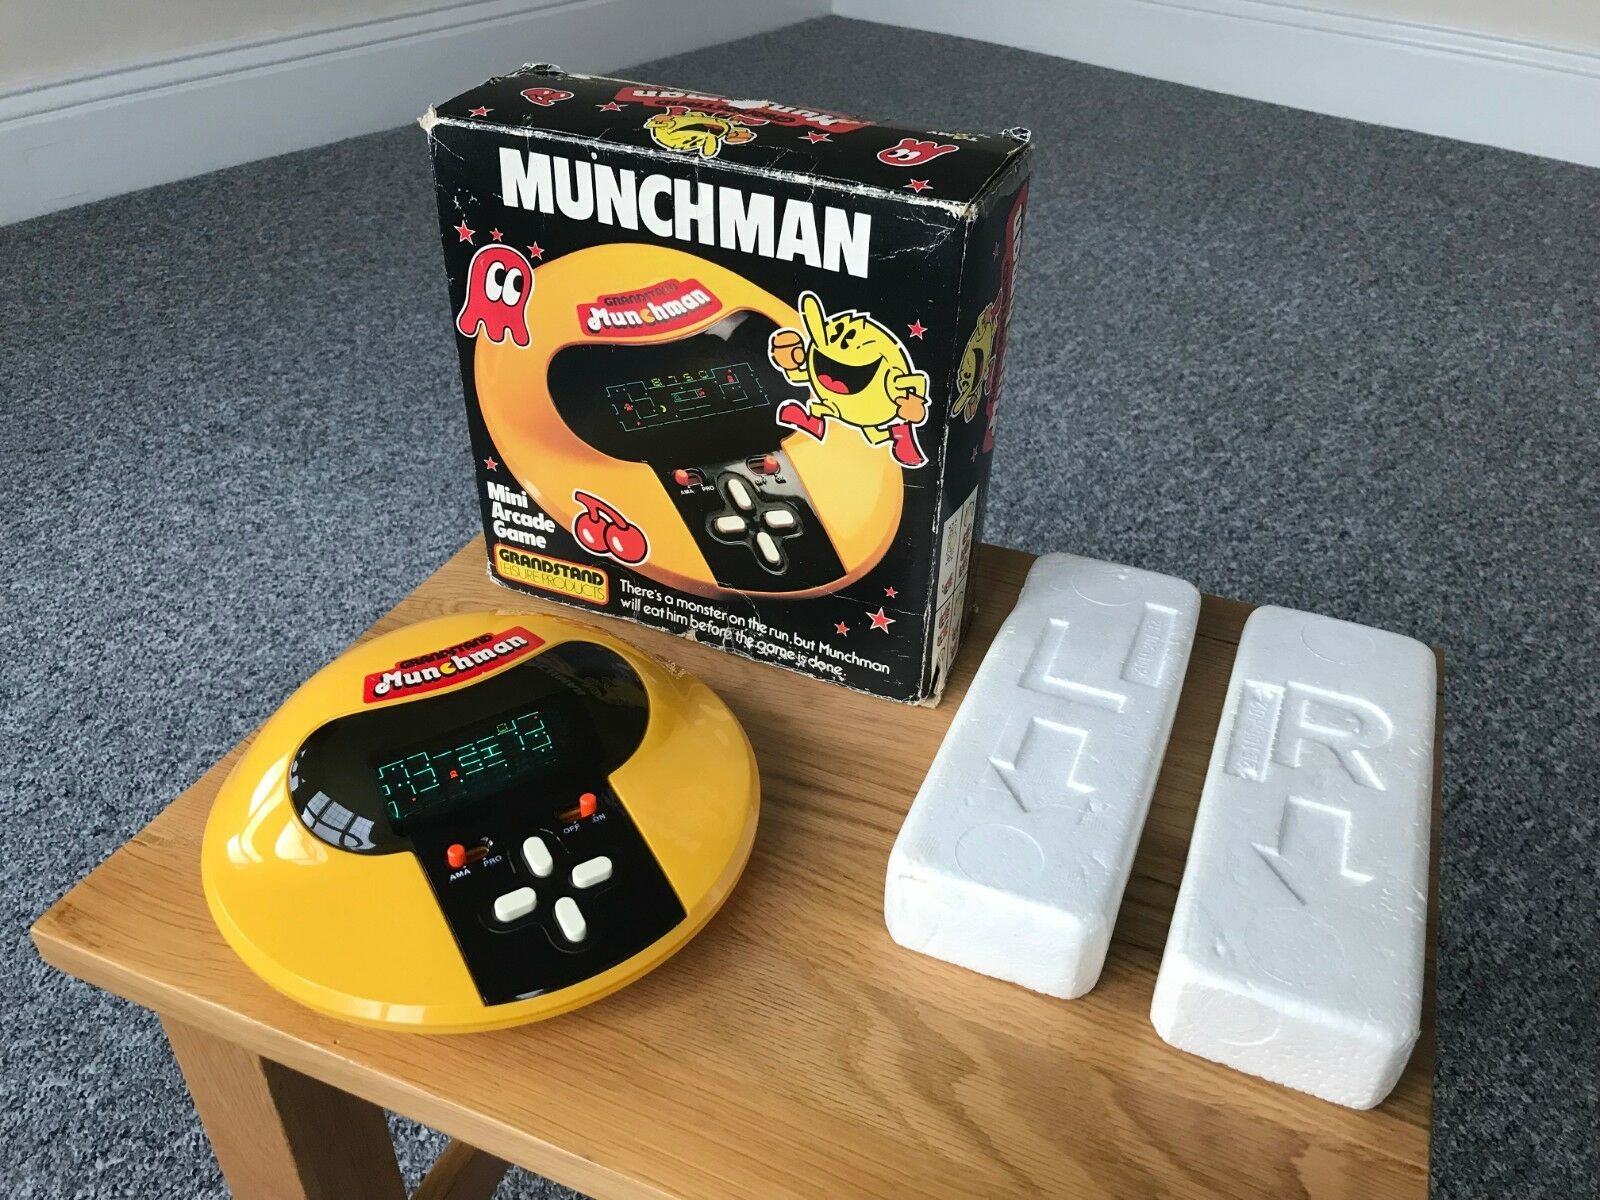 Boxed Grandstand Munchman Vintage 1981 Tabletop Electronic Game - Nr Mint Cond.